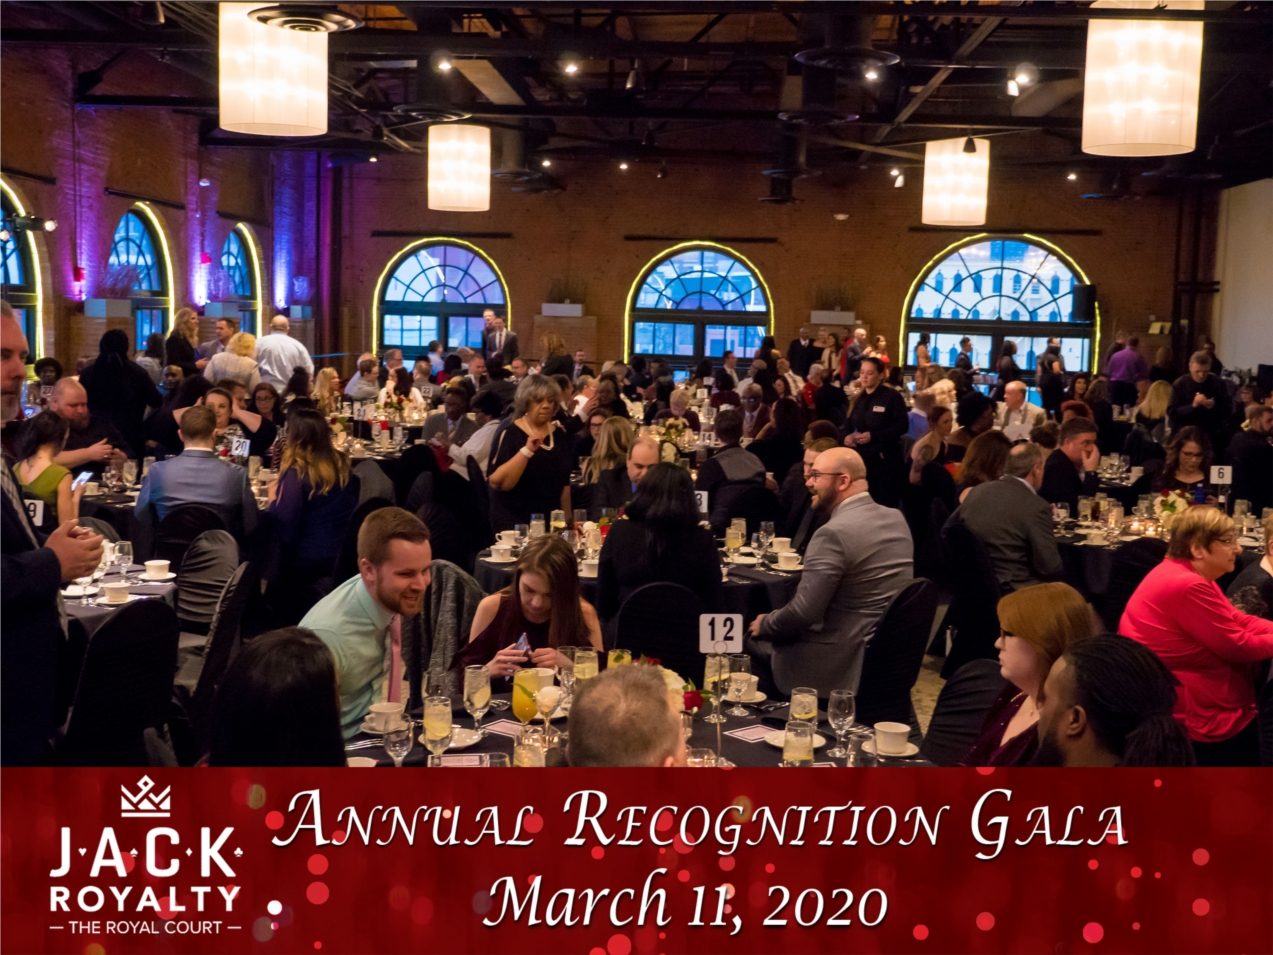 JACK Team Members celebrate at the annual JACK Royalty Gala recognizing top performing team members from the year.